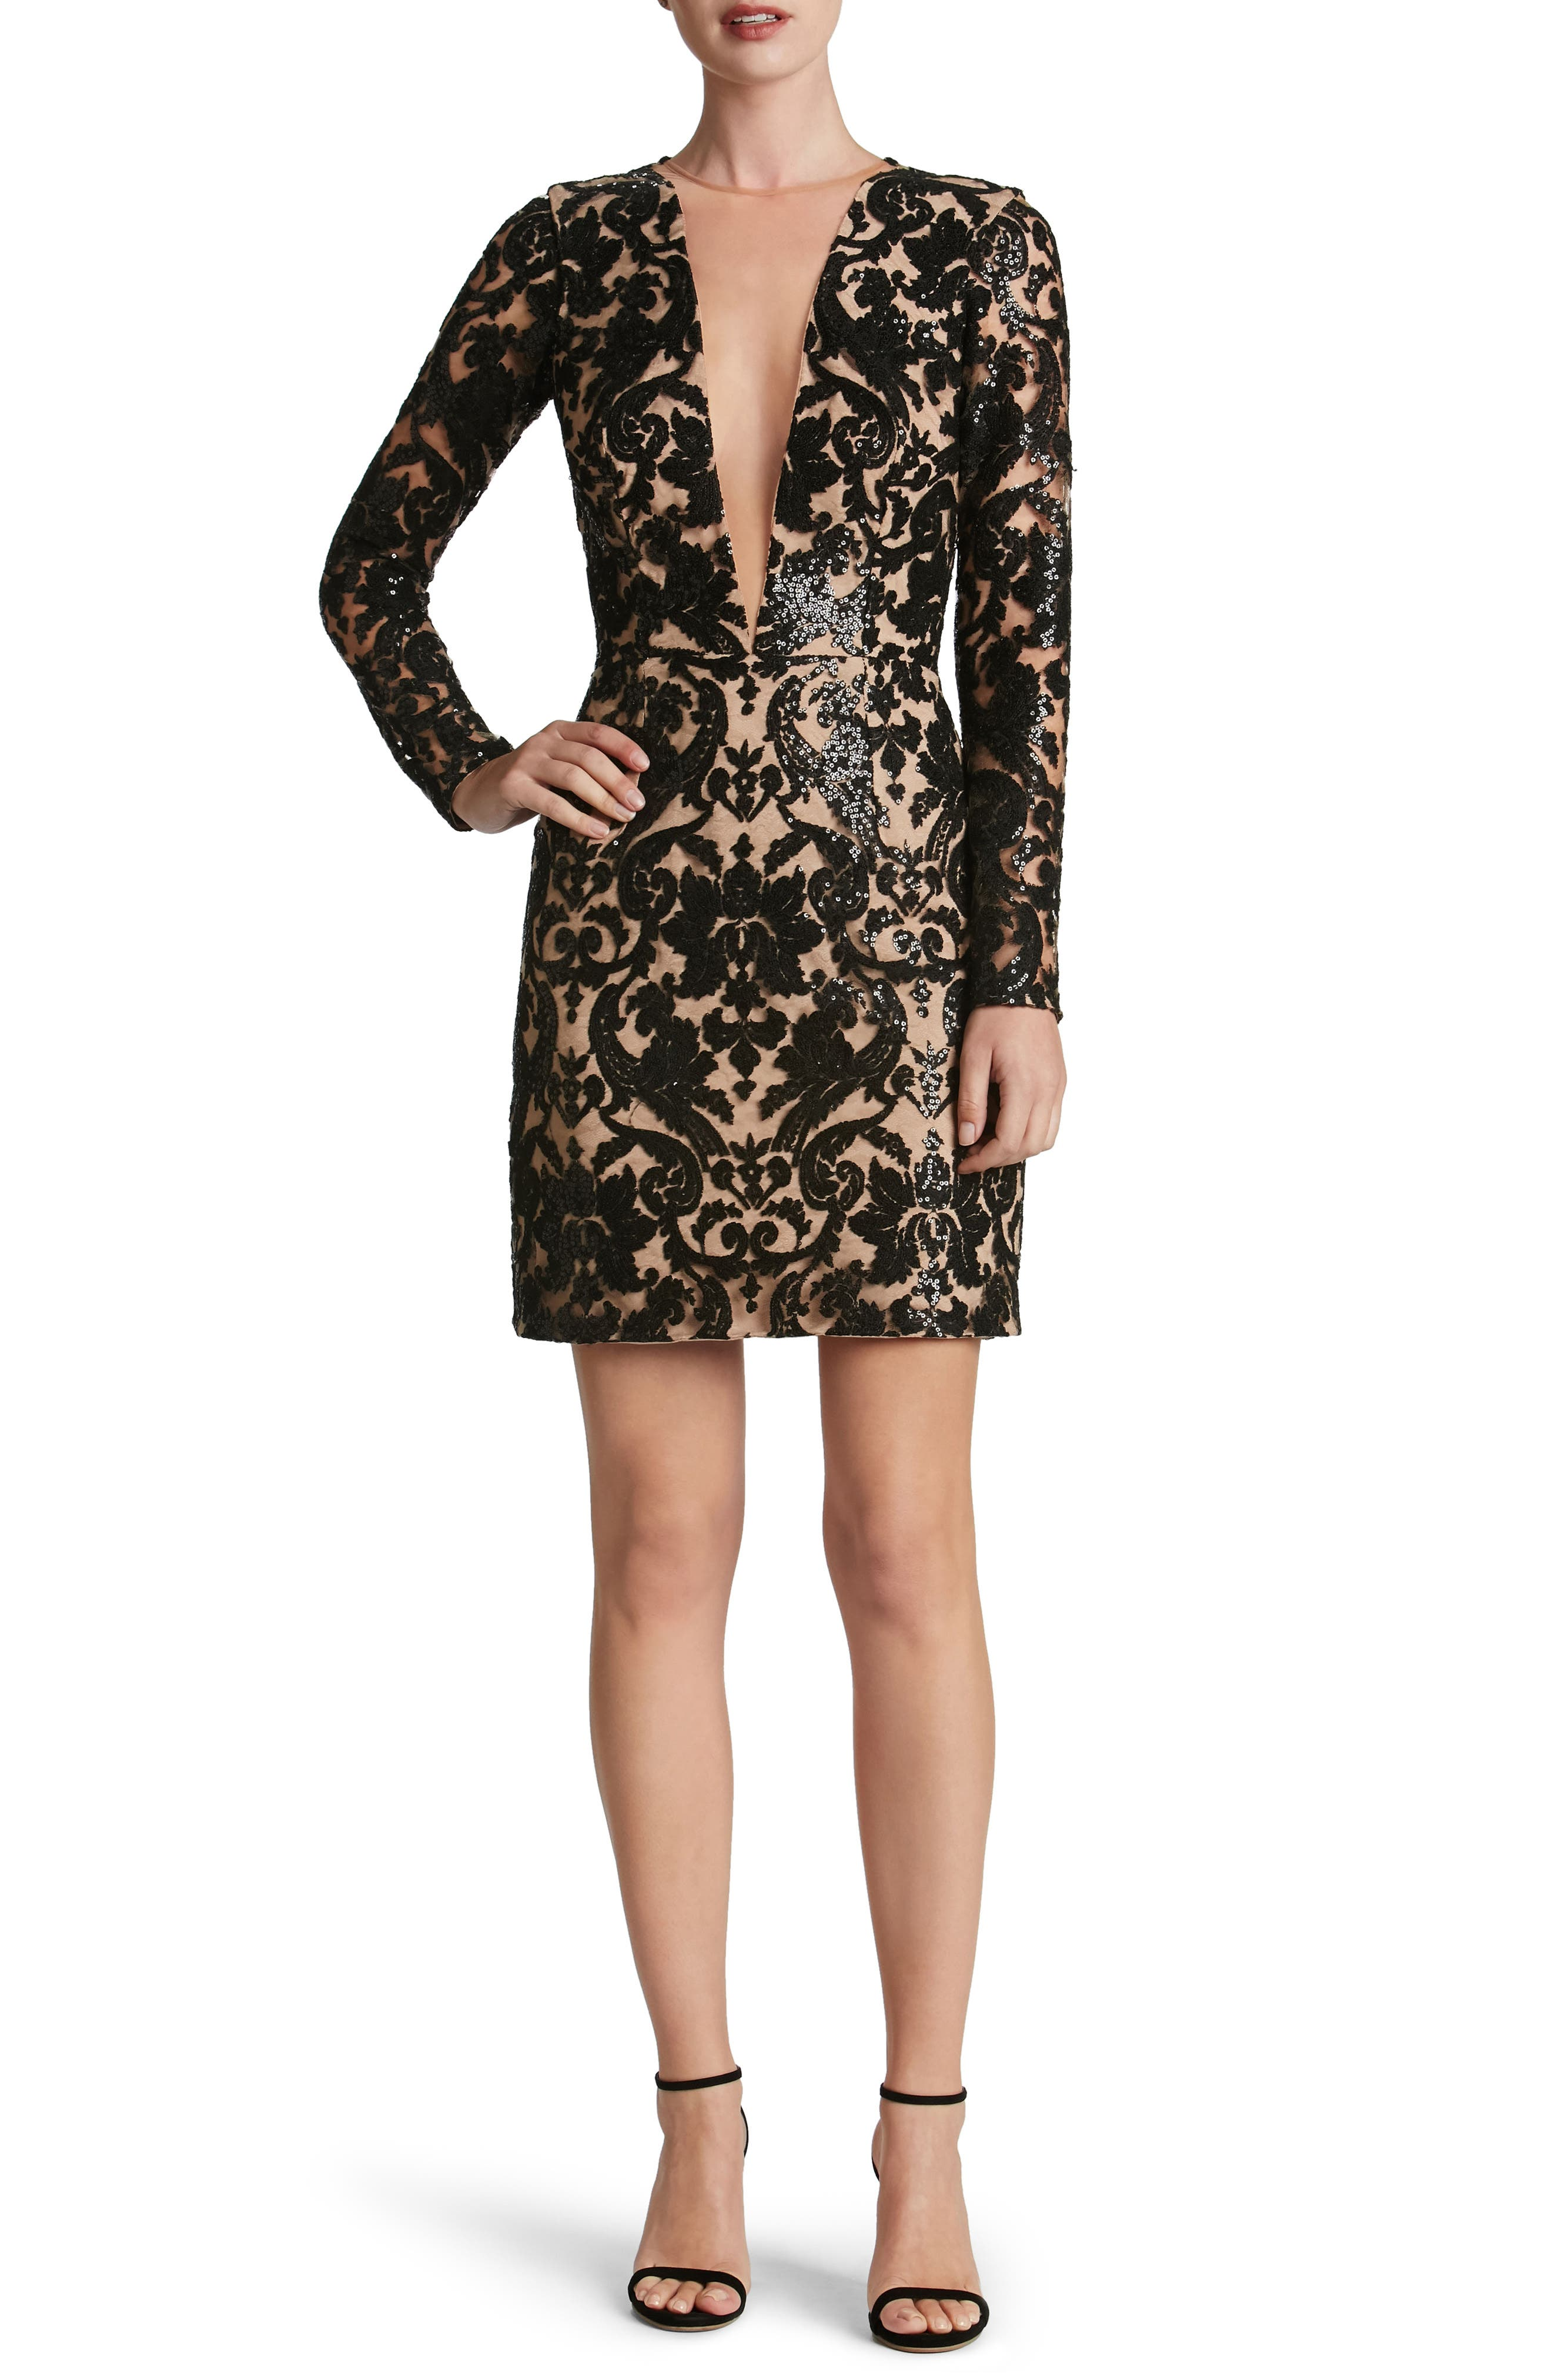 Main Image - Dress the Population Claudia Plunging Illusion Sequin Lace Minidress (Nordstrom Exclusive)